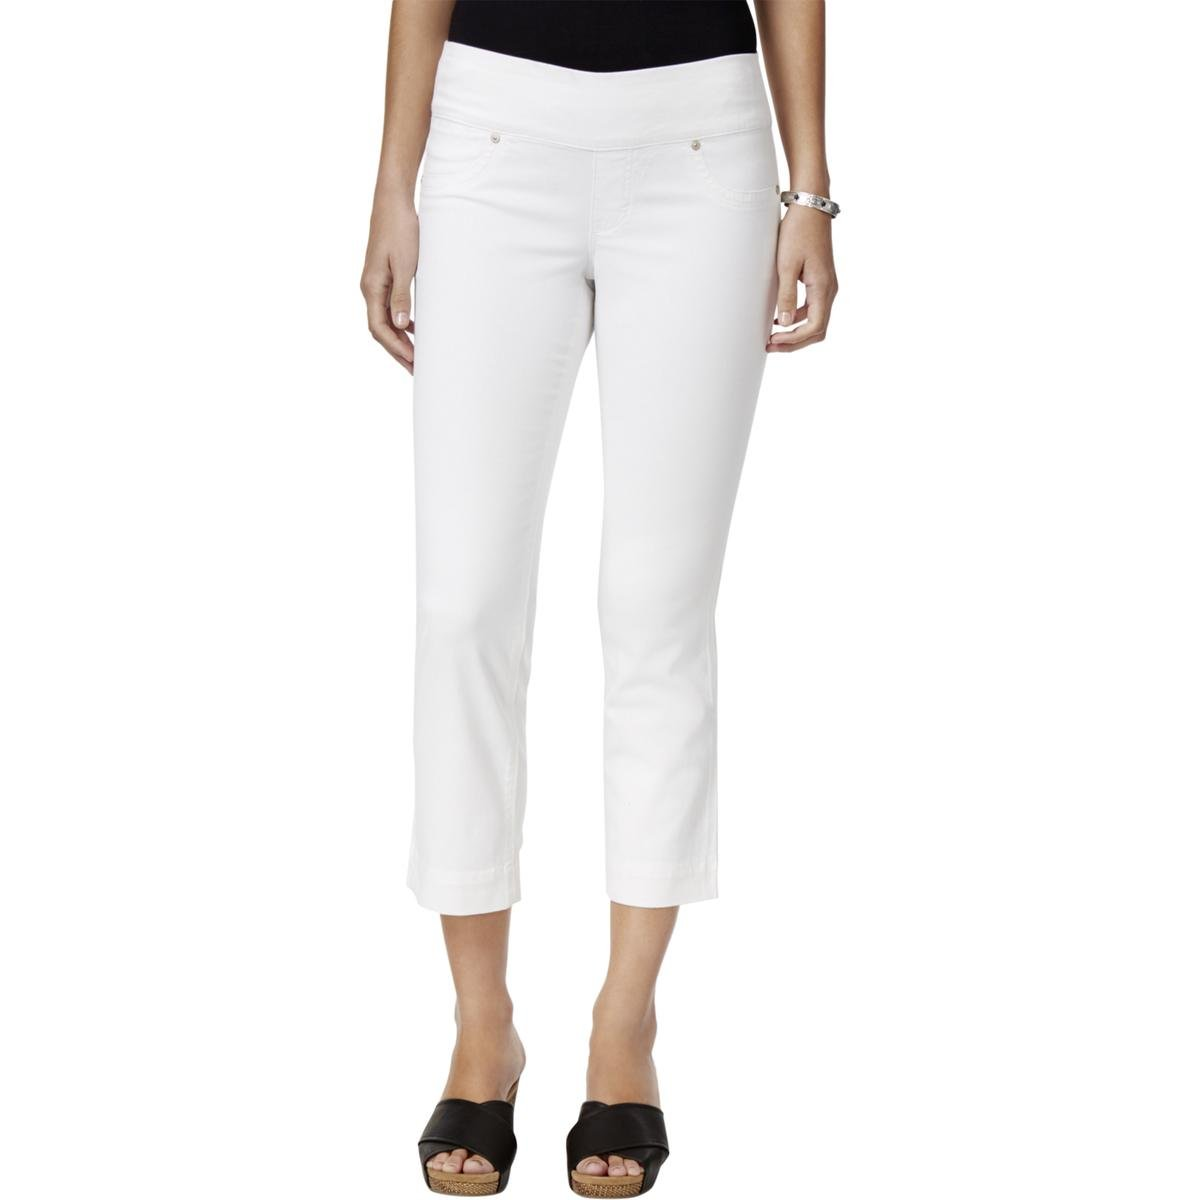 Style & Co. Womens Low Rise Pull On Capri Jeans White M